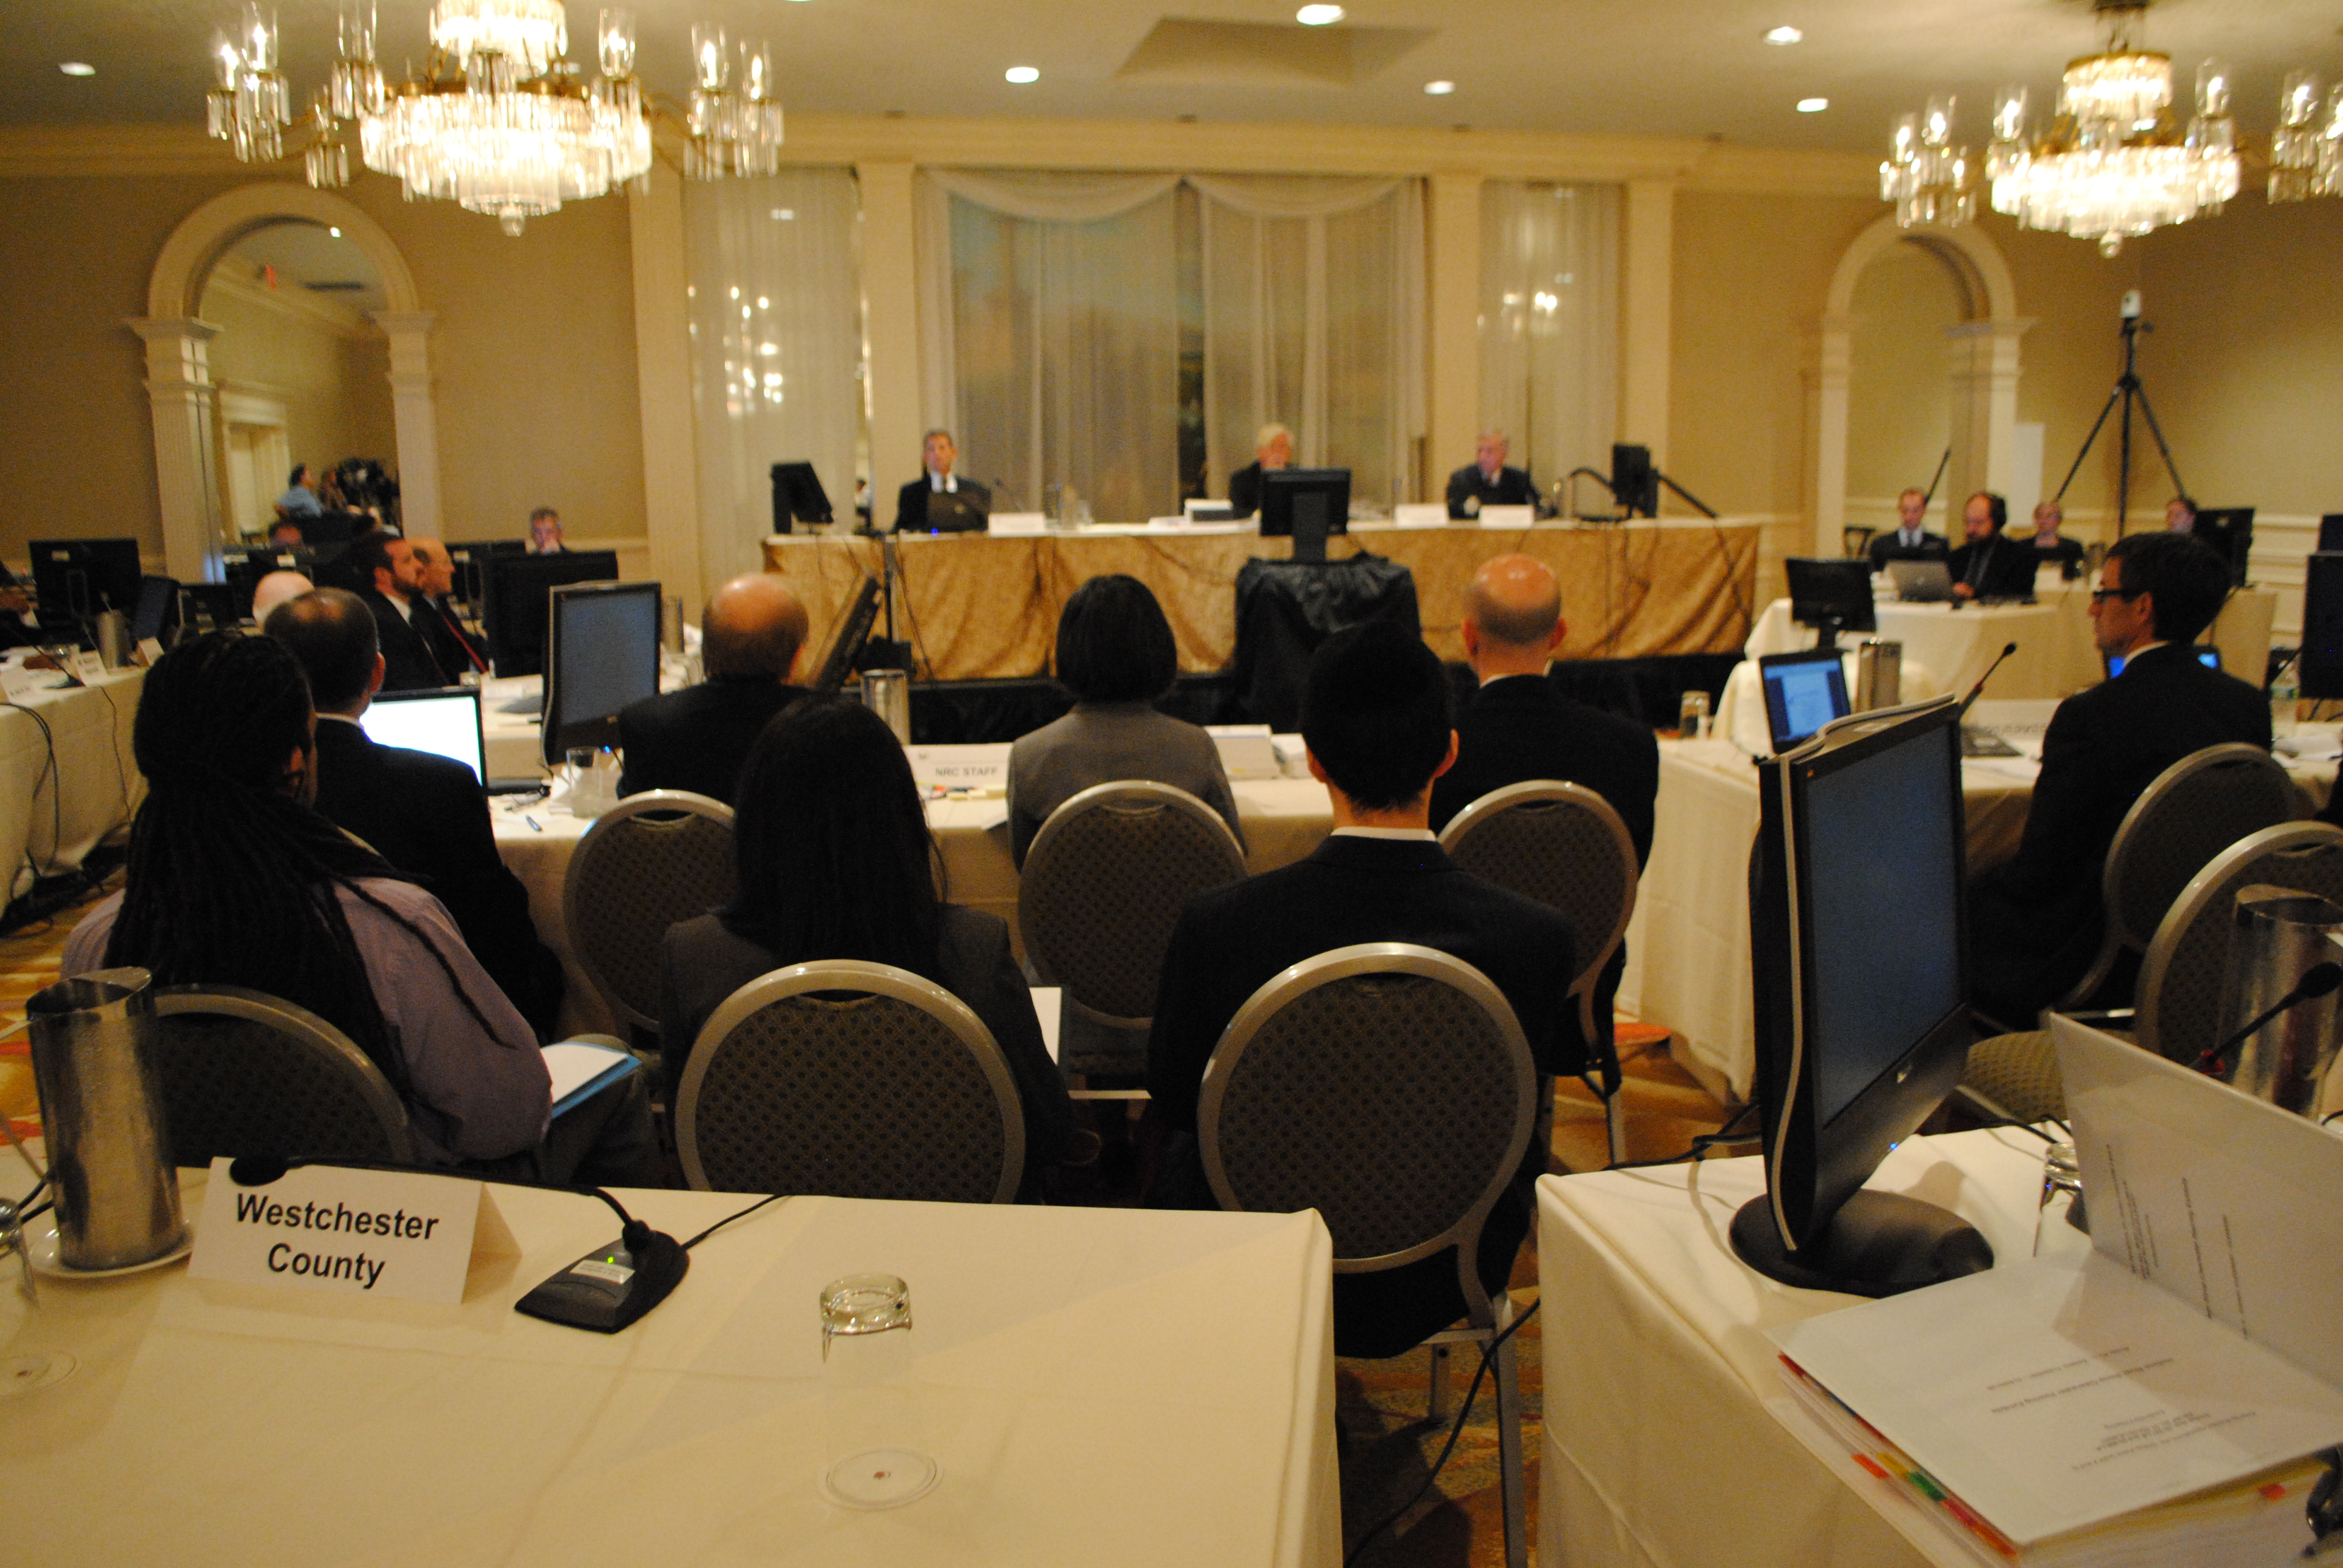 This is the Atomic Safety and Licensing Board hearings, which are being held at the DoubleTree Hotel in Tarrytown.